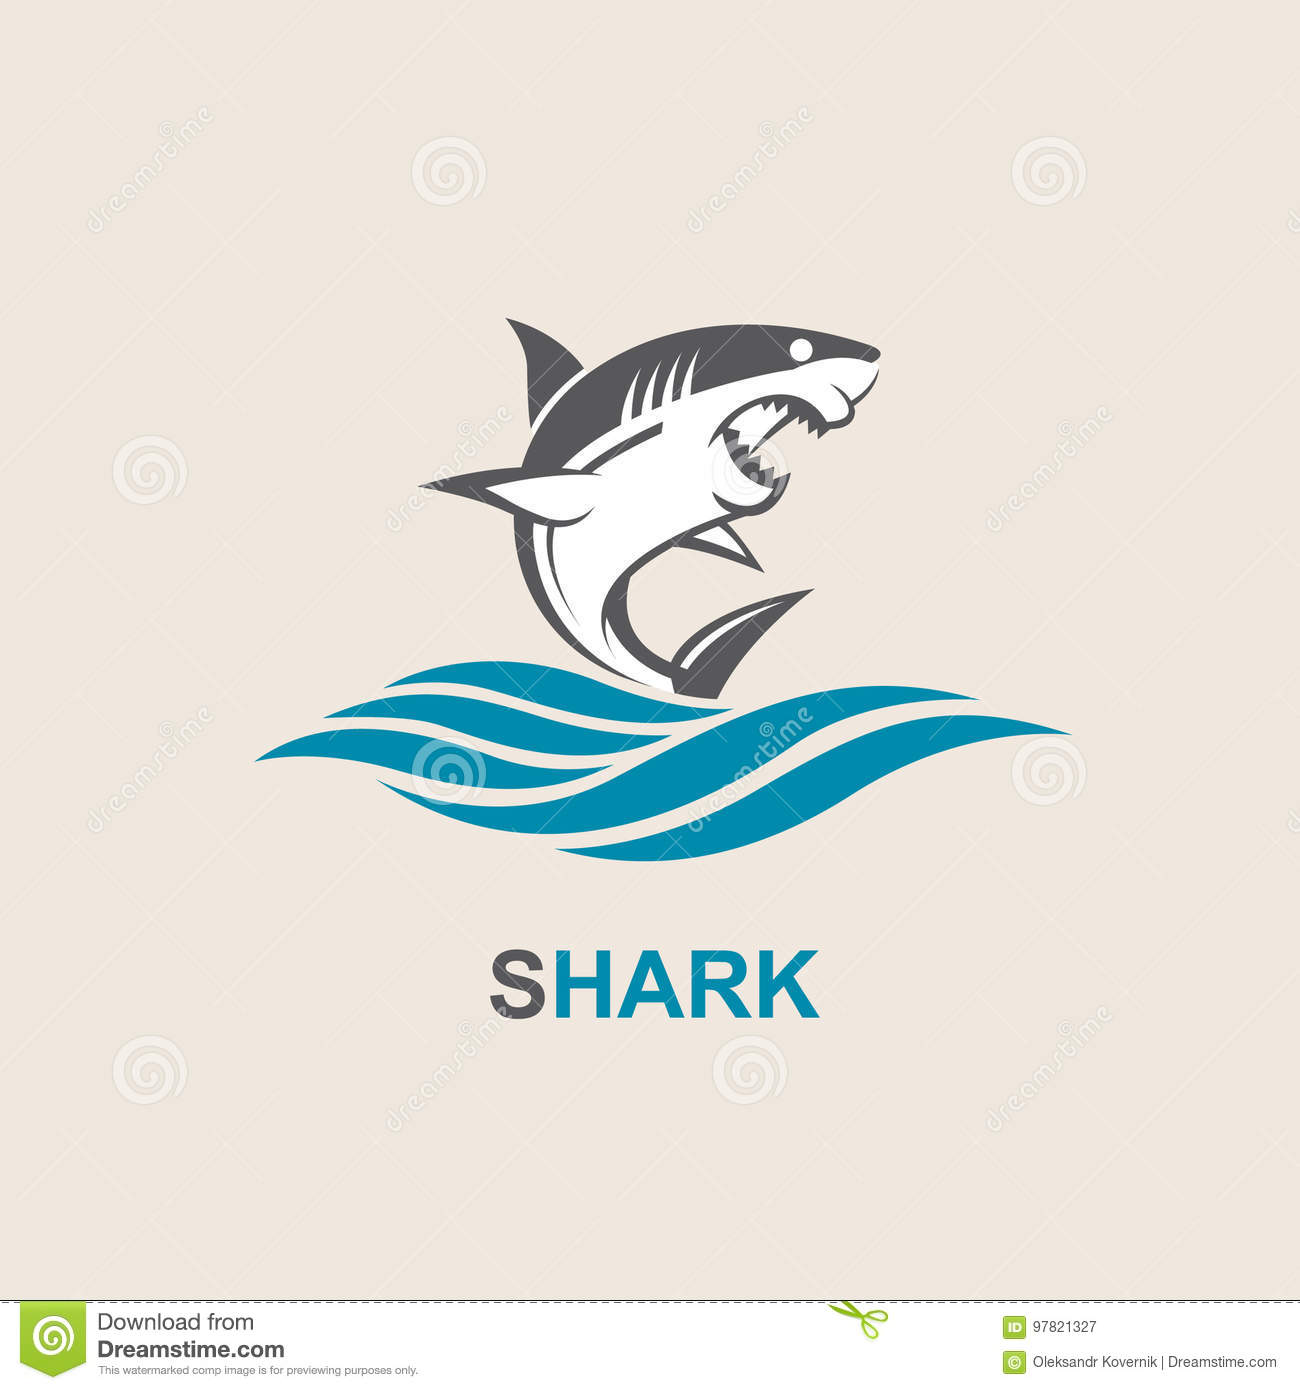 Angry Shark Icon Stock Vector Illustration Of Symbol 97821327